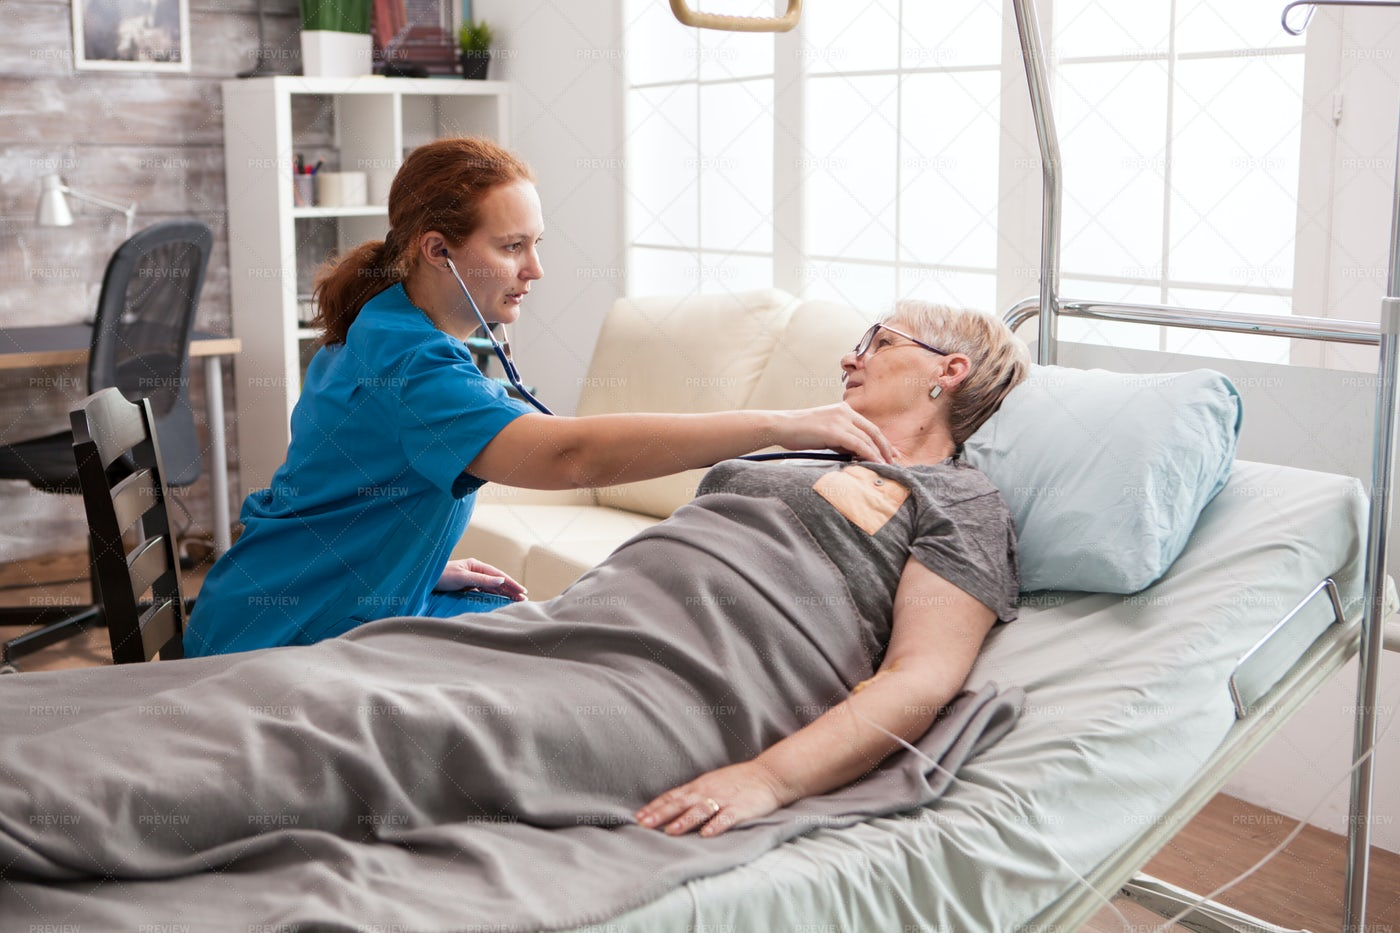 Patient Checkup In Bed: Stock Photos